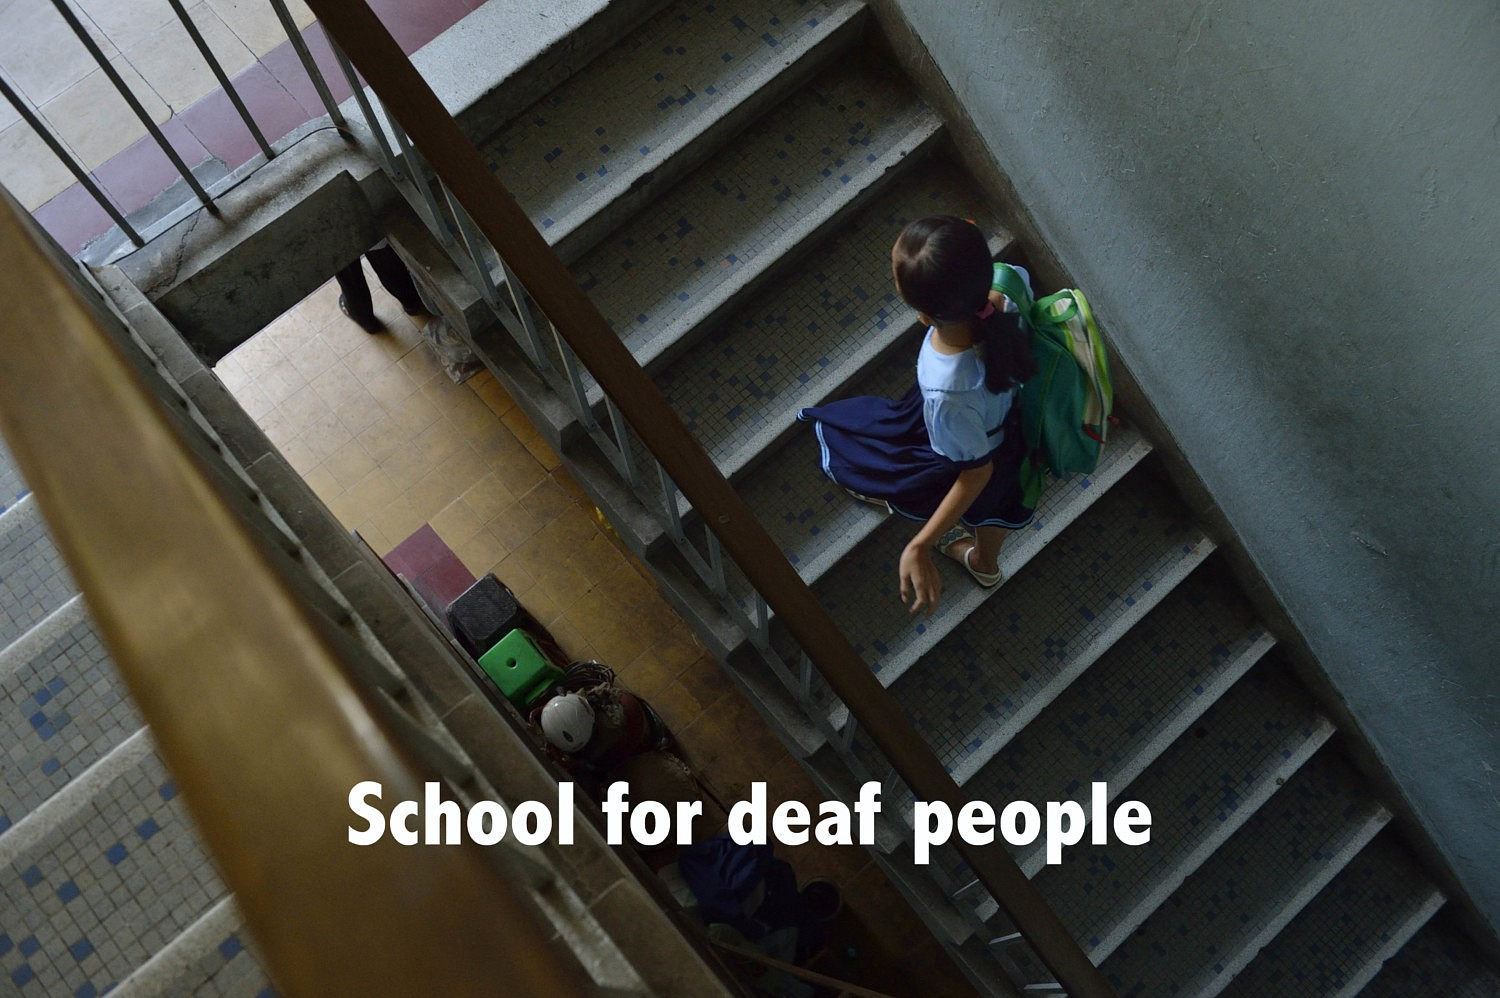 Video for a deaf school | School for deaf people